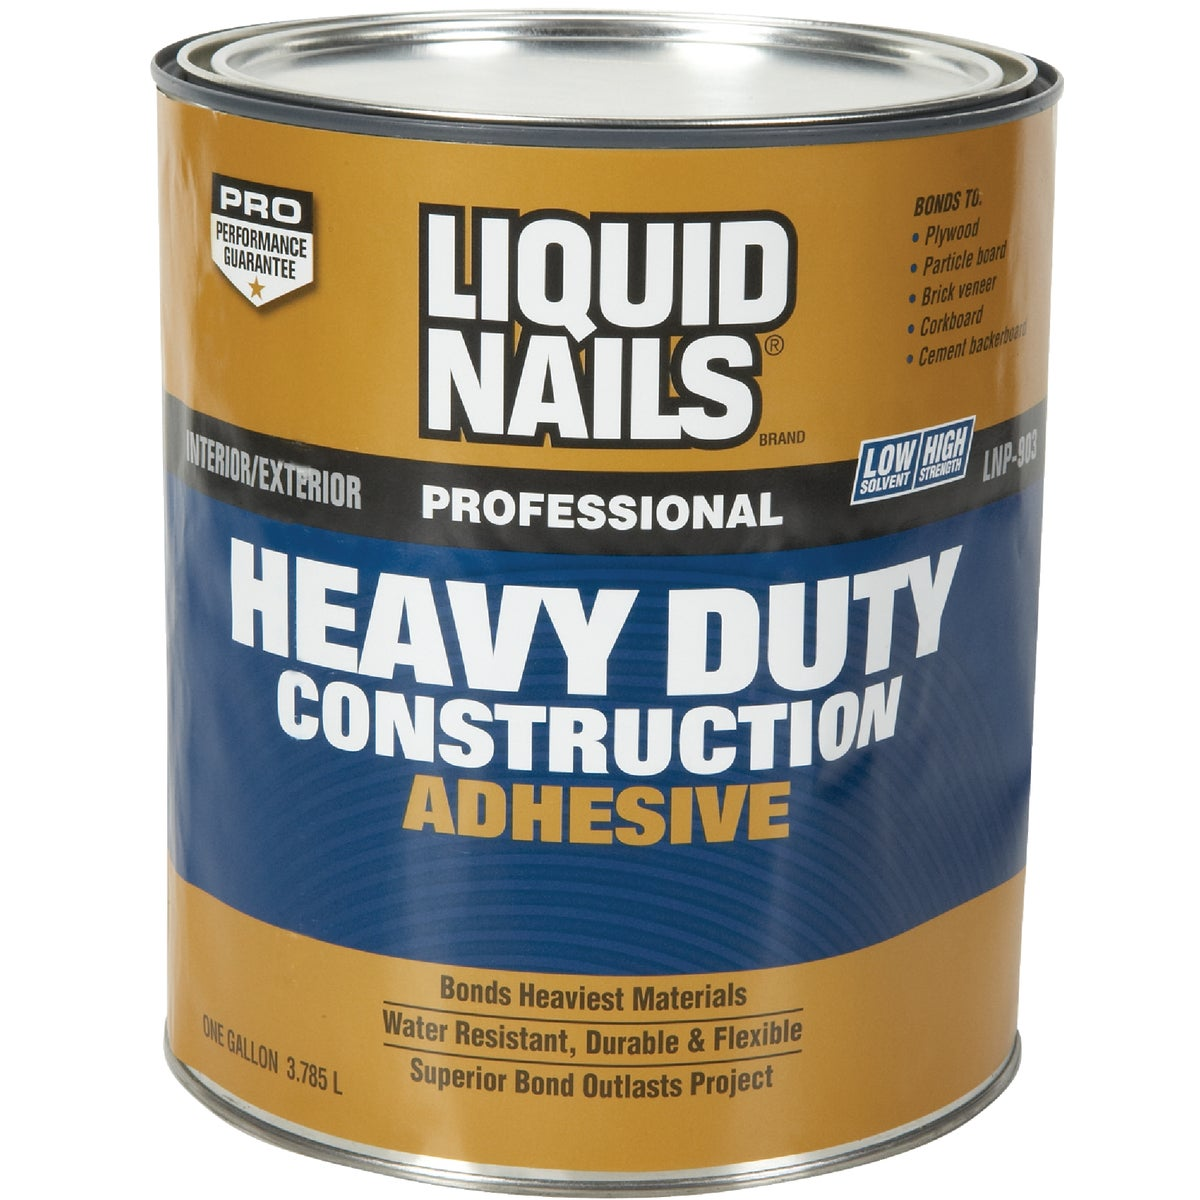 GAL H/D CONST ADHESIVE